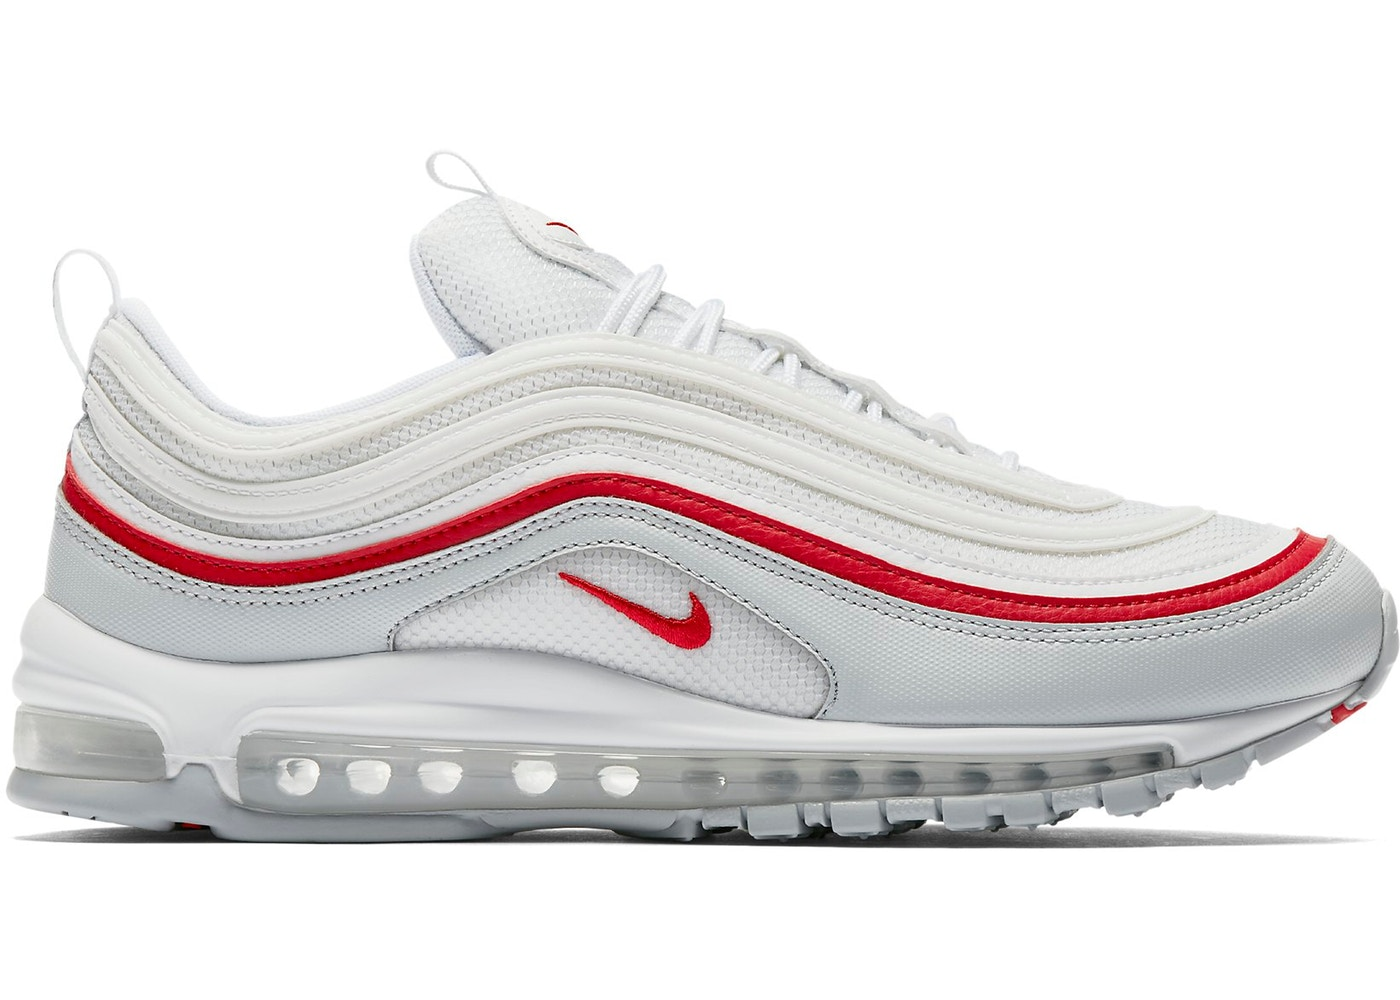 on sale 3dfce 4d1e6 ... Air Max 97 White Pure Platinum University Red ...